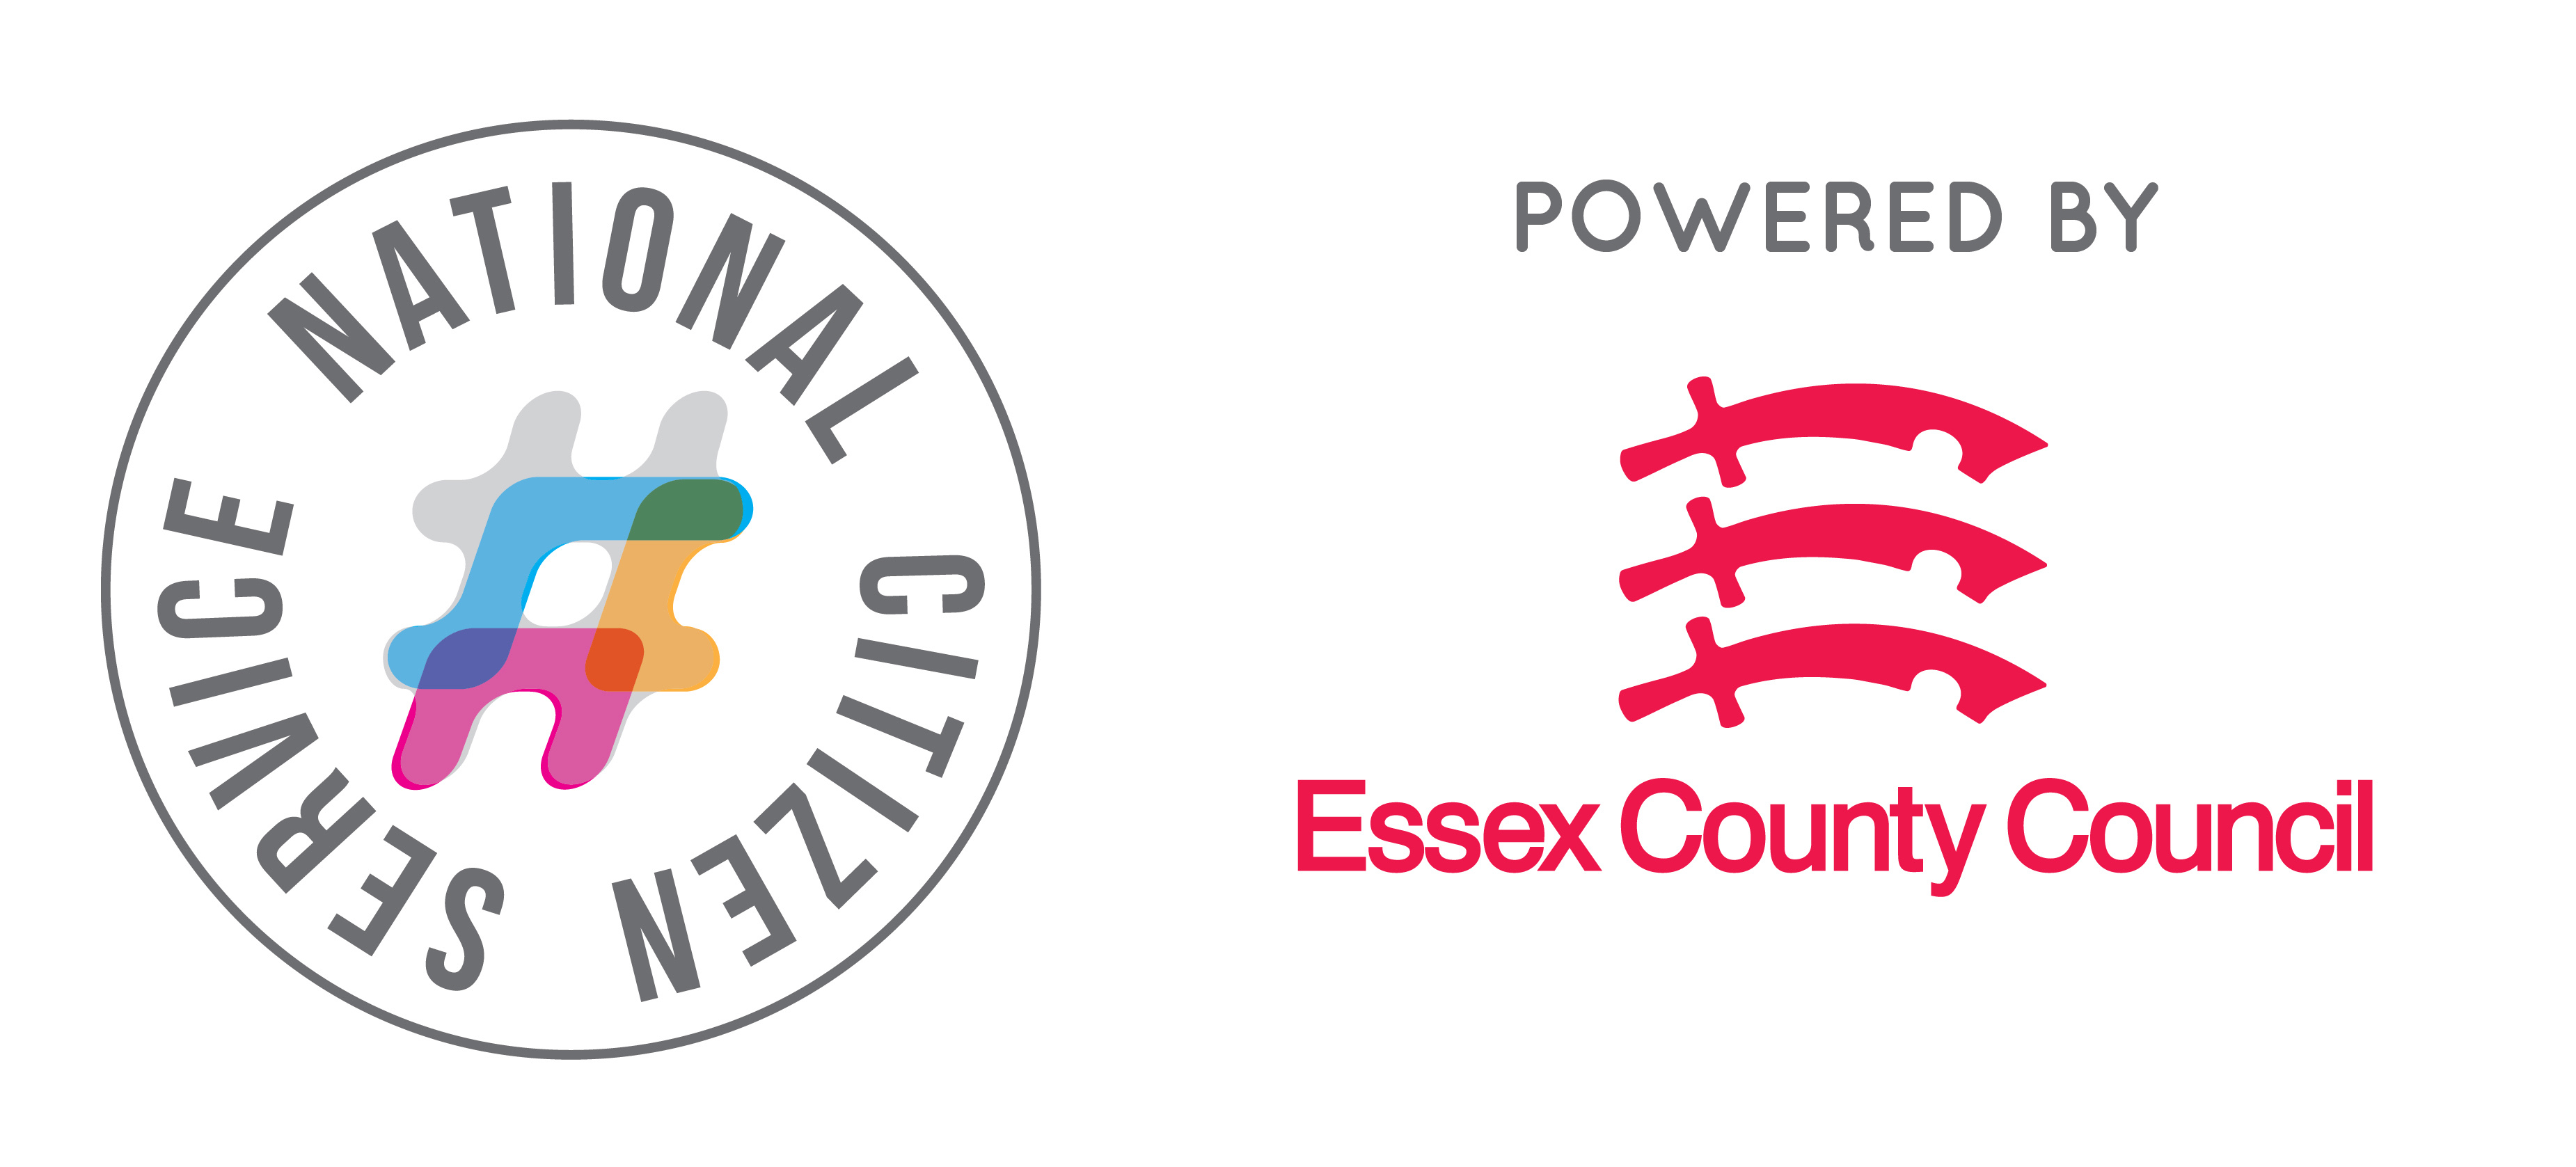 National Citizen Service, powered by Essex County Council